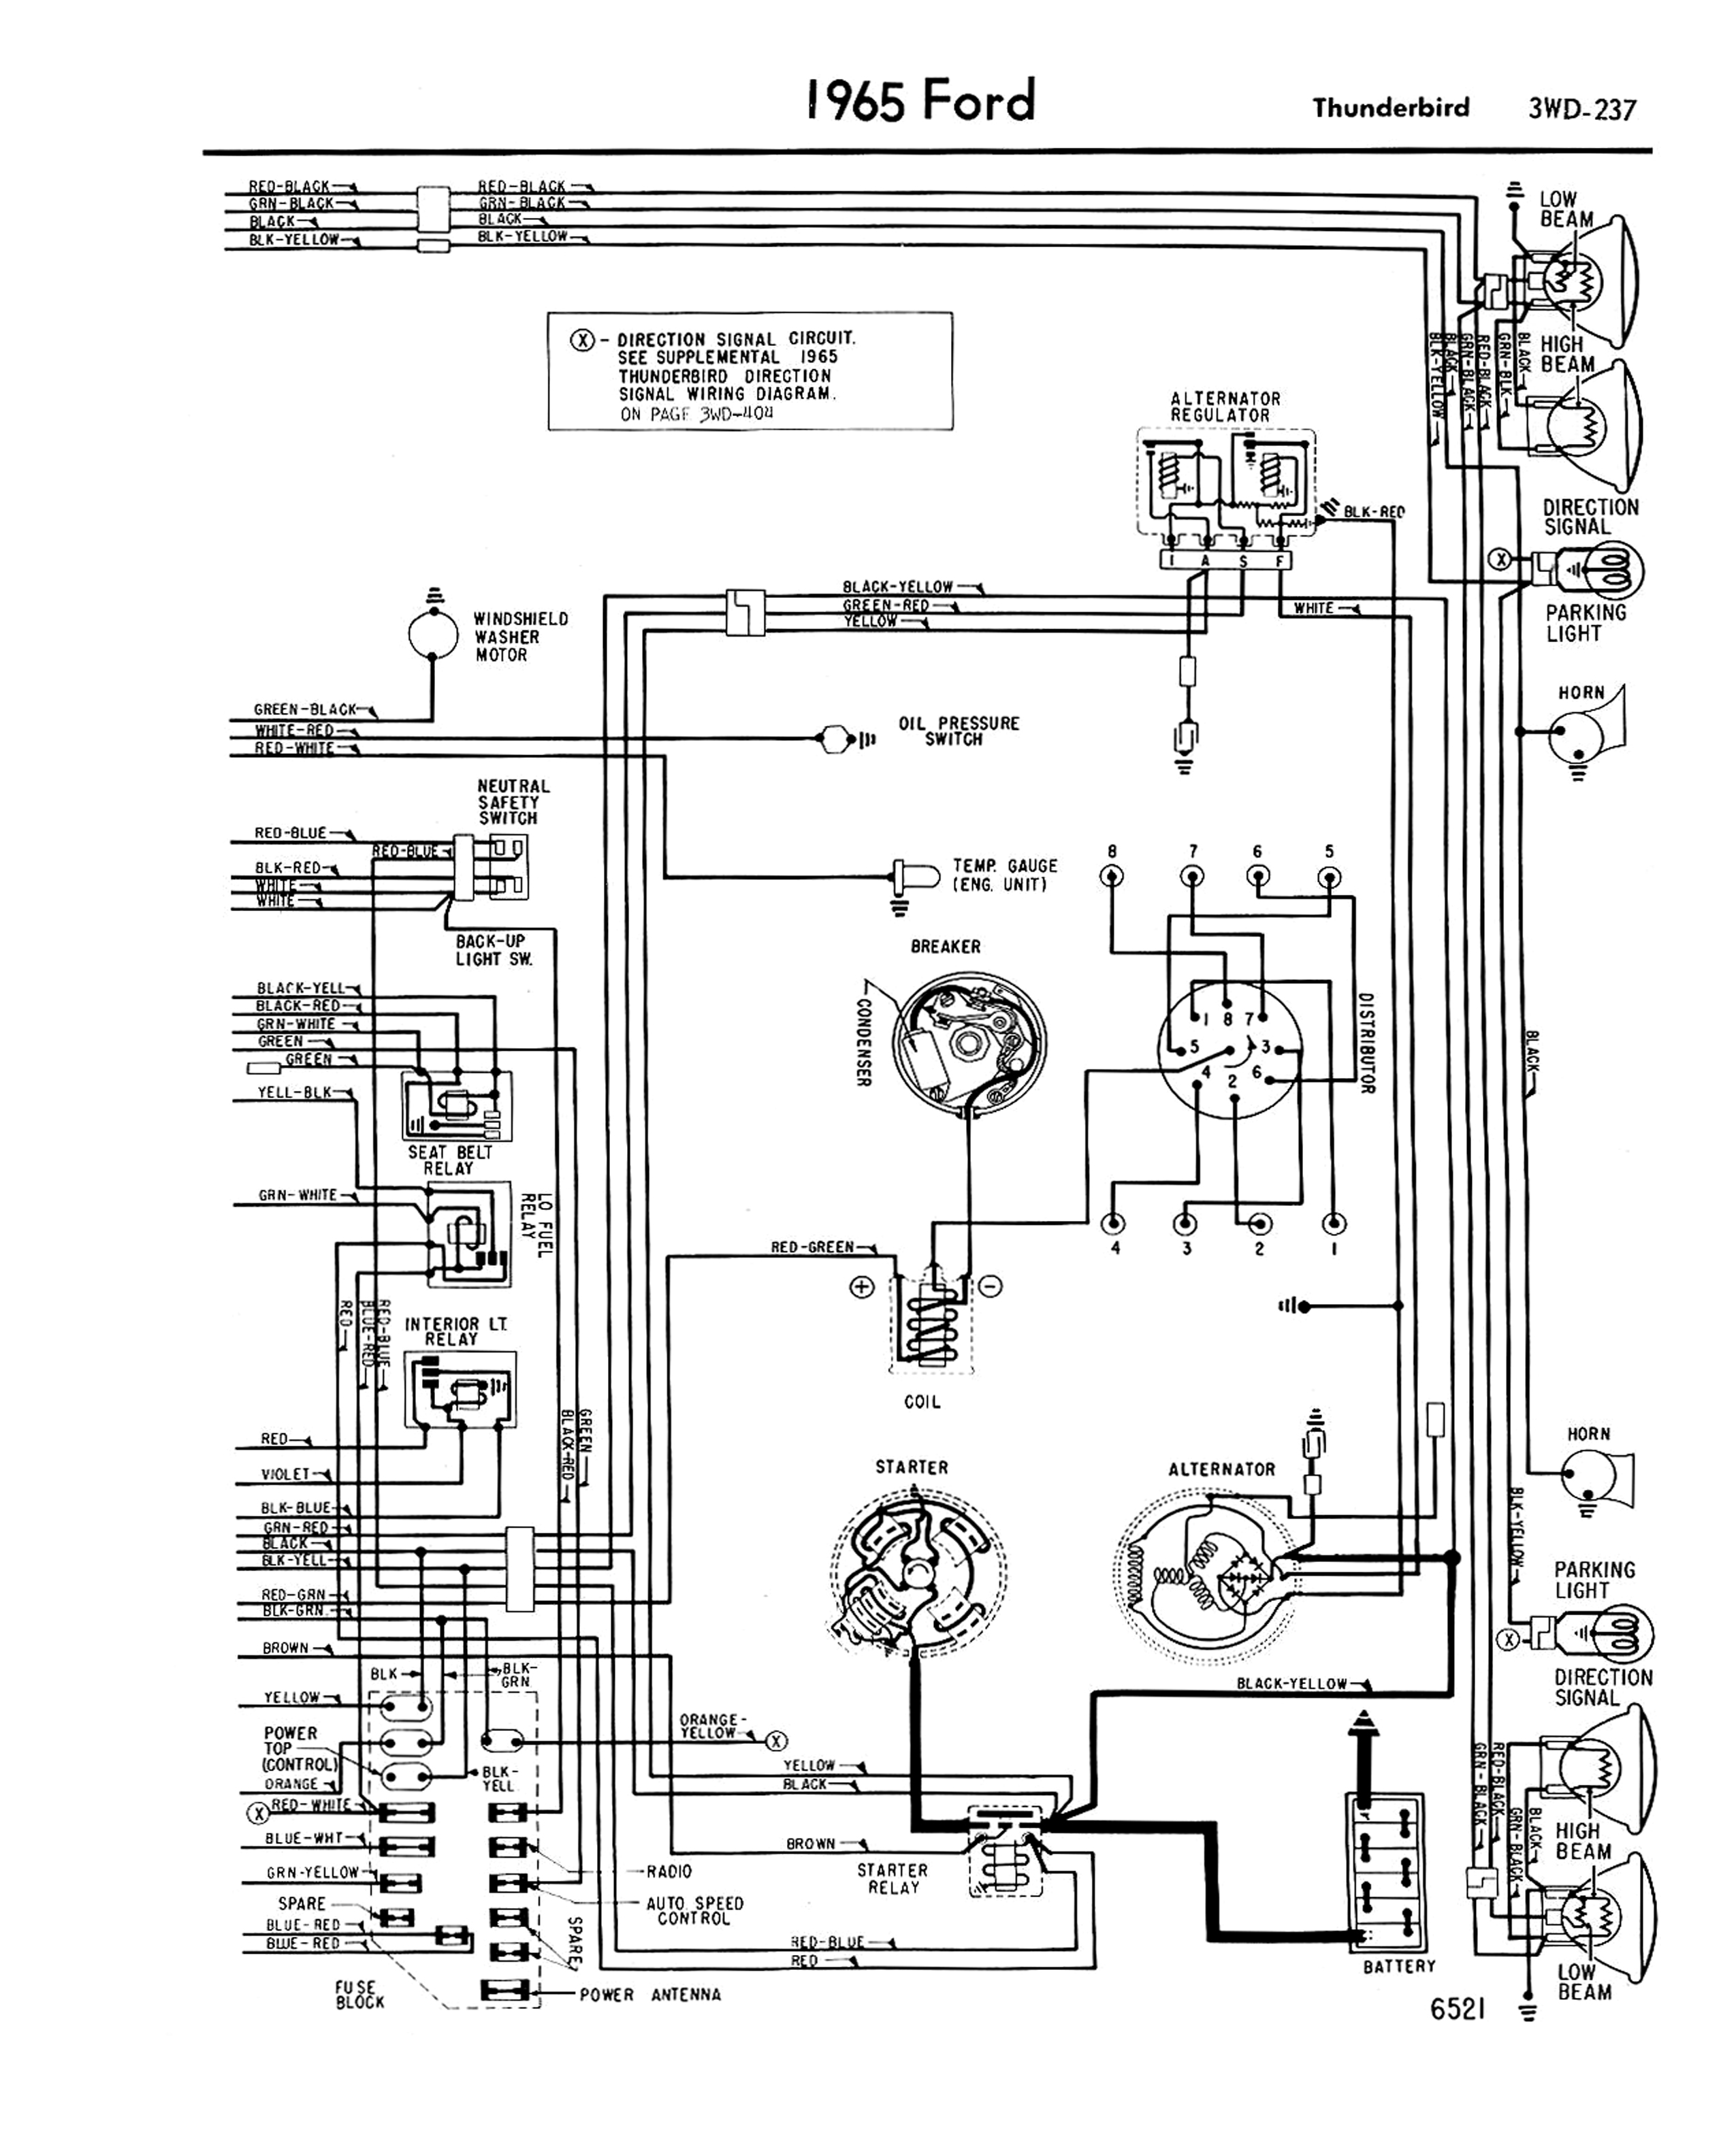 59 Thunderbird Tail Light Wiring - Wiring Diagram Sample on 1956 chevrolet power steering, 1965 chevrolet wiring diagram, 1955 chevrolet wiring diagram, 1930 chevrolet wiring diagram, 1940 chevrolet wiring diagram, 1969 chevrolet wiring diagram, 1956 chevrolet ignition switch, 1956 chevrolet fuse panel diagram, 1956 chevrolet continental kit, 1937 chevrolet wiring diagram, chevrolet impala wiring diagram, 1956 chevrolet door, 1957 chevrolet wiring diagram, 1974 chevrolet wiring diagram, 1977 chevrolet wiring diagram, 1970 chevrolet wiring diagram, 1963 chevrolet wiring diagram, 1967 chevrolet wiring diagram, 1958 chevrolet wiring diagram, 2008 chevrolet wiring diagram,